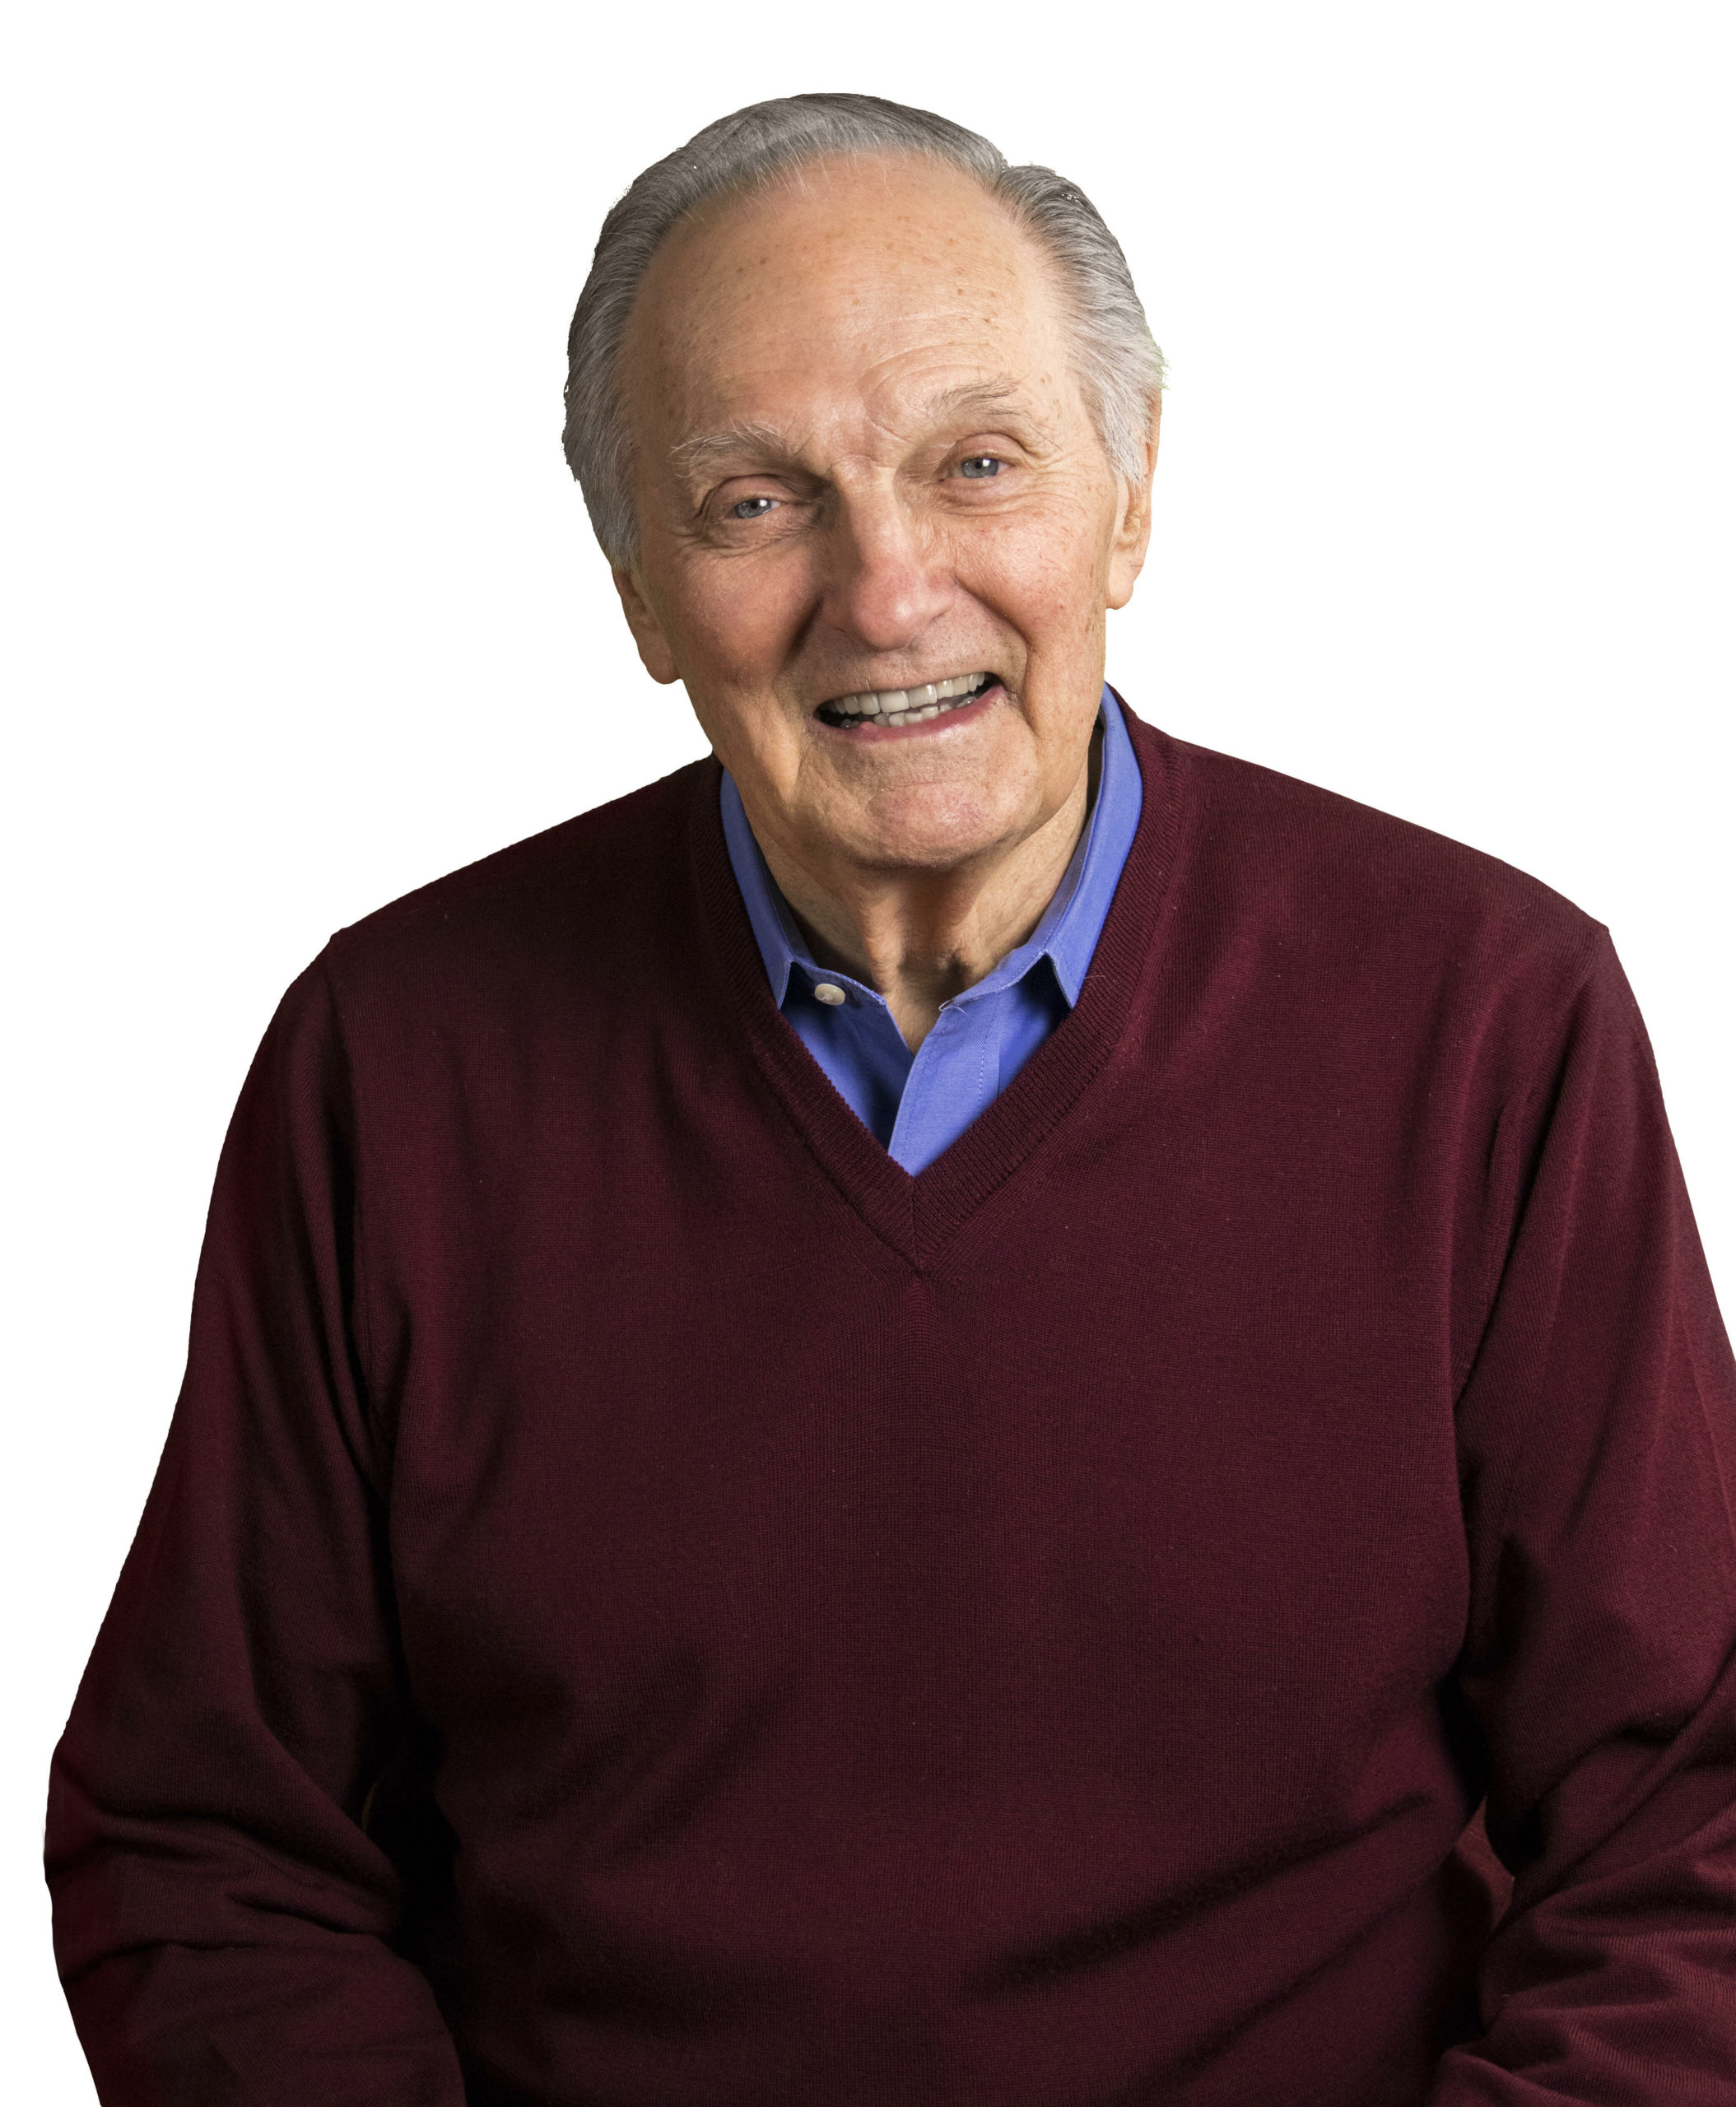 Alan Alda will offer narration to accompany Bach's Chaconne.